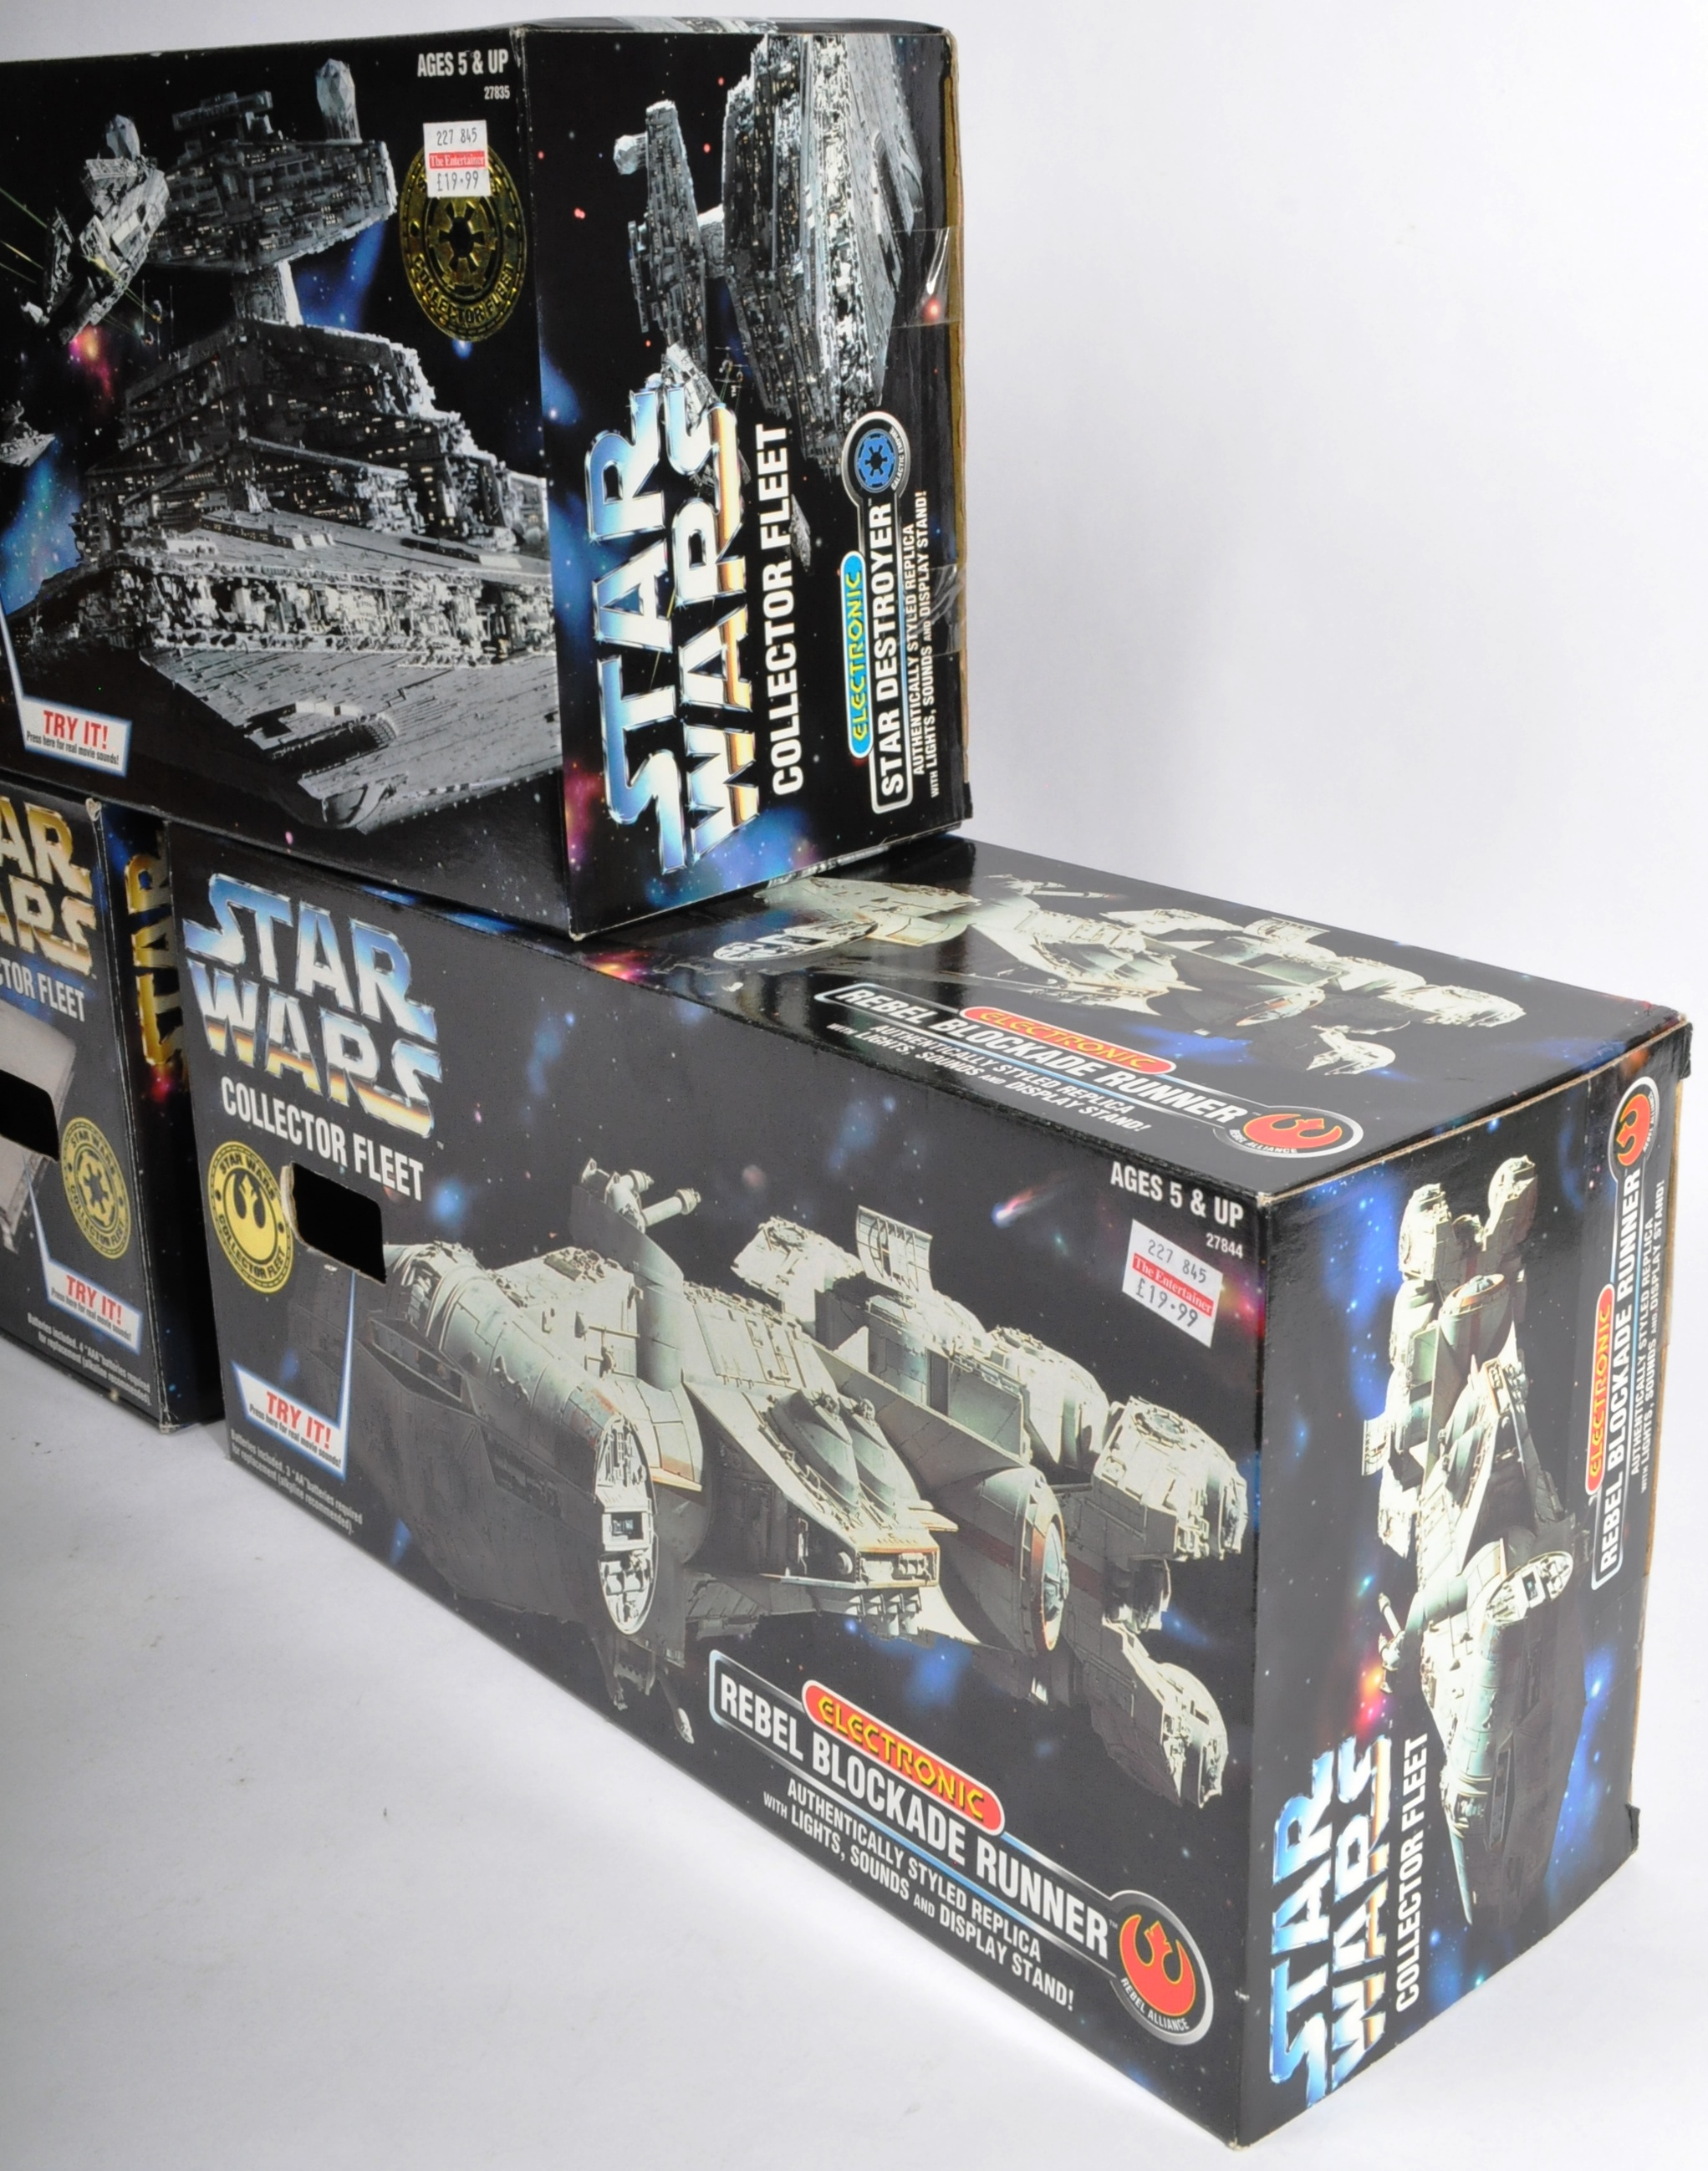 STAR WARS - COLLECTION OF KENNER ' COLLECTOR FLEET ' PLAYSETS - Image 2 of 5